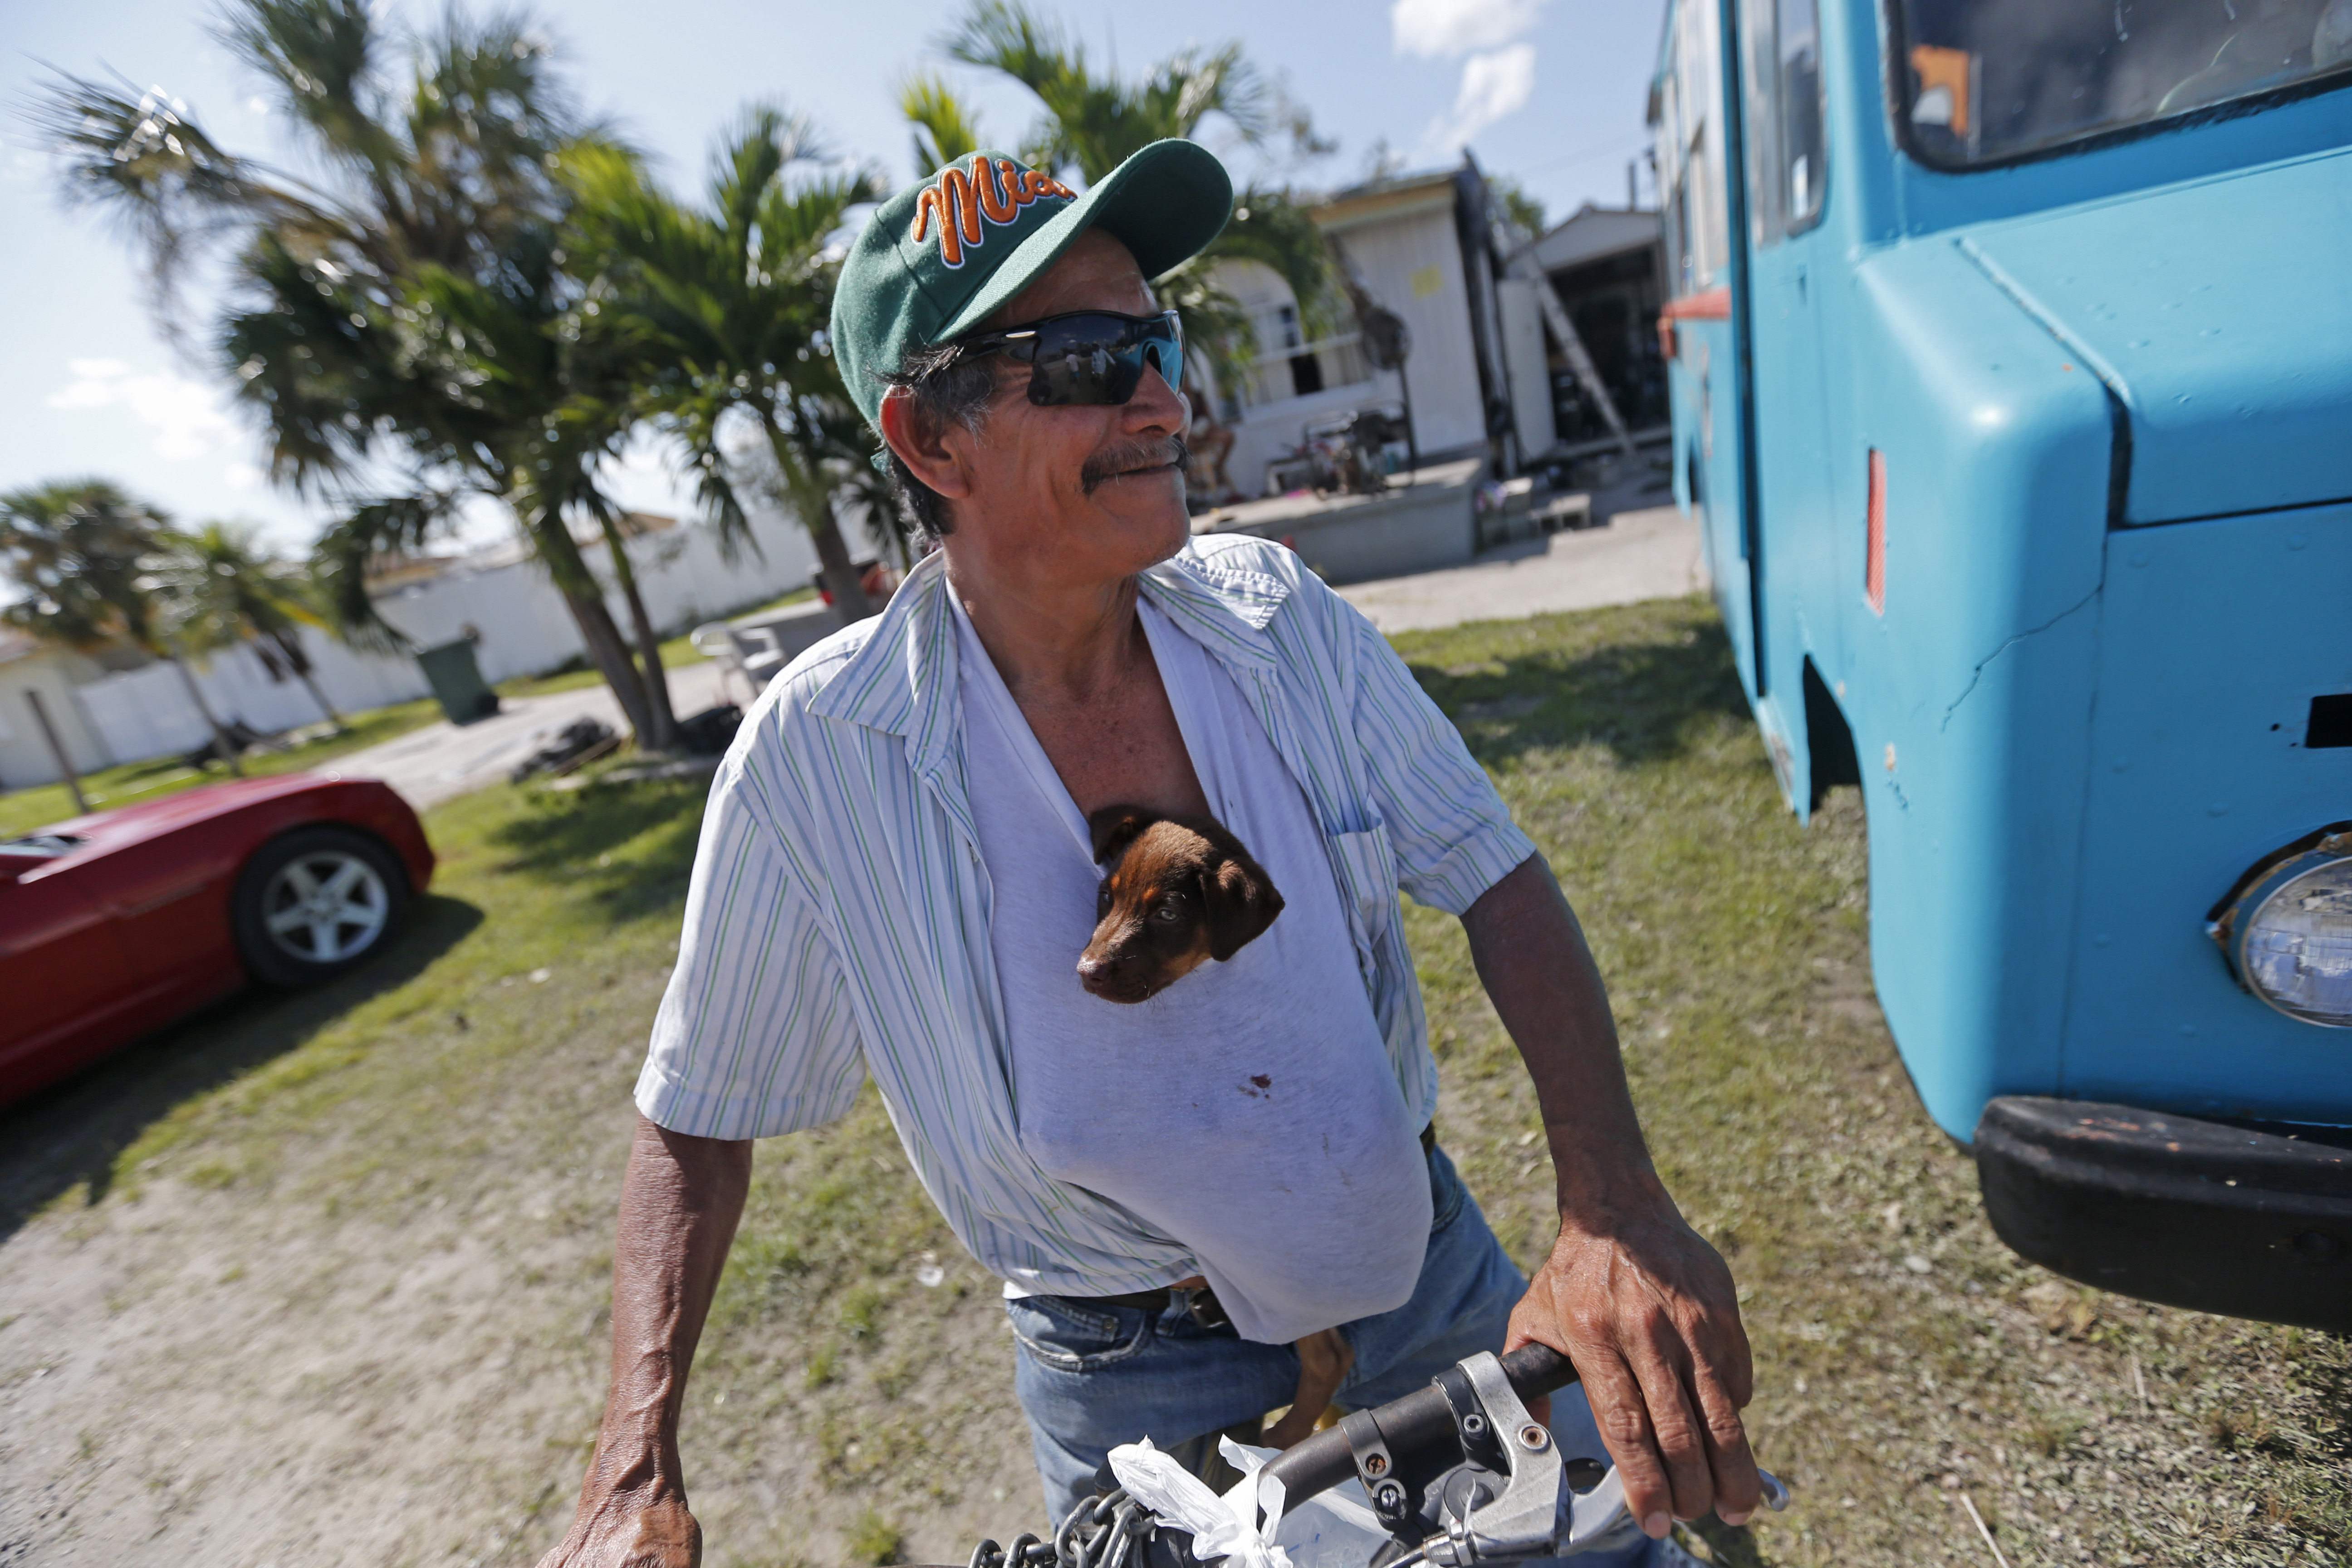 """Irma The Poor-6 In this Sept. 12, 2017 photo, Nicolas Perez keeps a puppy he named """"Irma,"""" stuffed in his shirt, who he rescued from flooding in the aftermath of Hurricane Irma, in Immokalee, Fla. The town is one of the poorest in the state. Home of many day laborers and migrant workers, Immokalee sustained heavy damage from Irma that will take months to overcome. (AP Photo/Gerald Herbert)"""